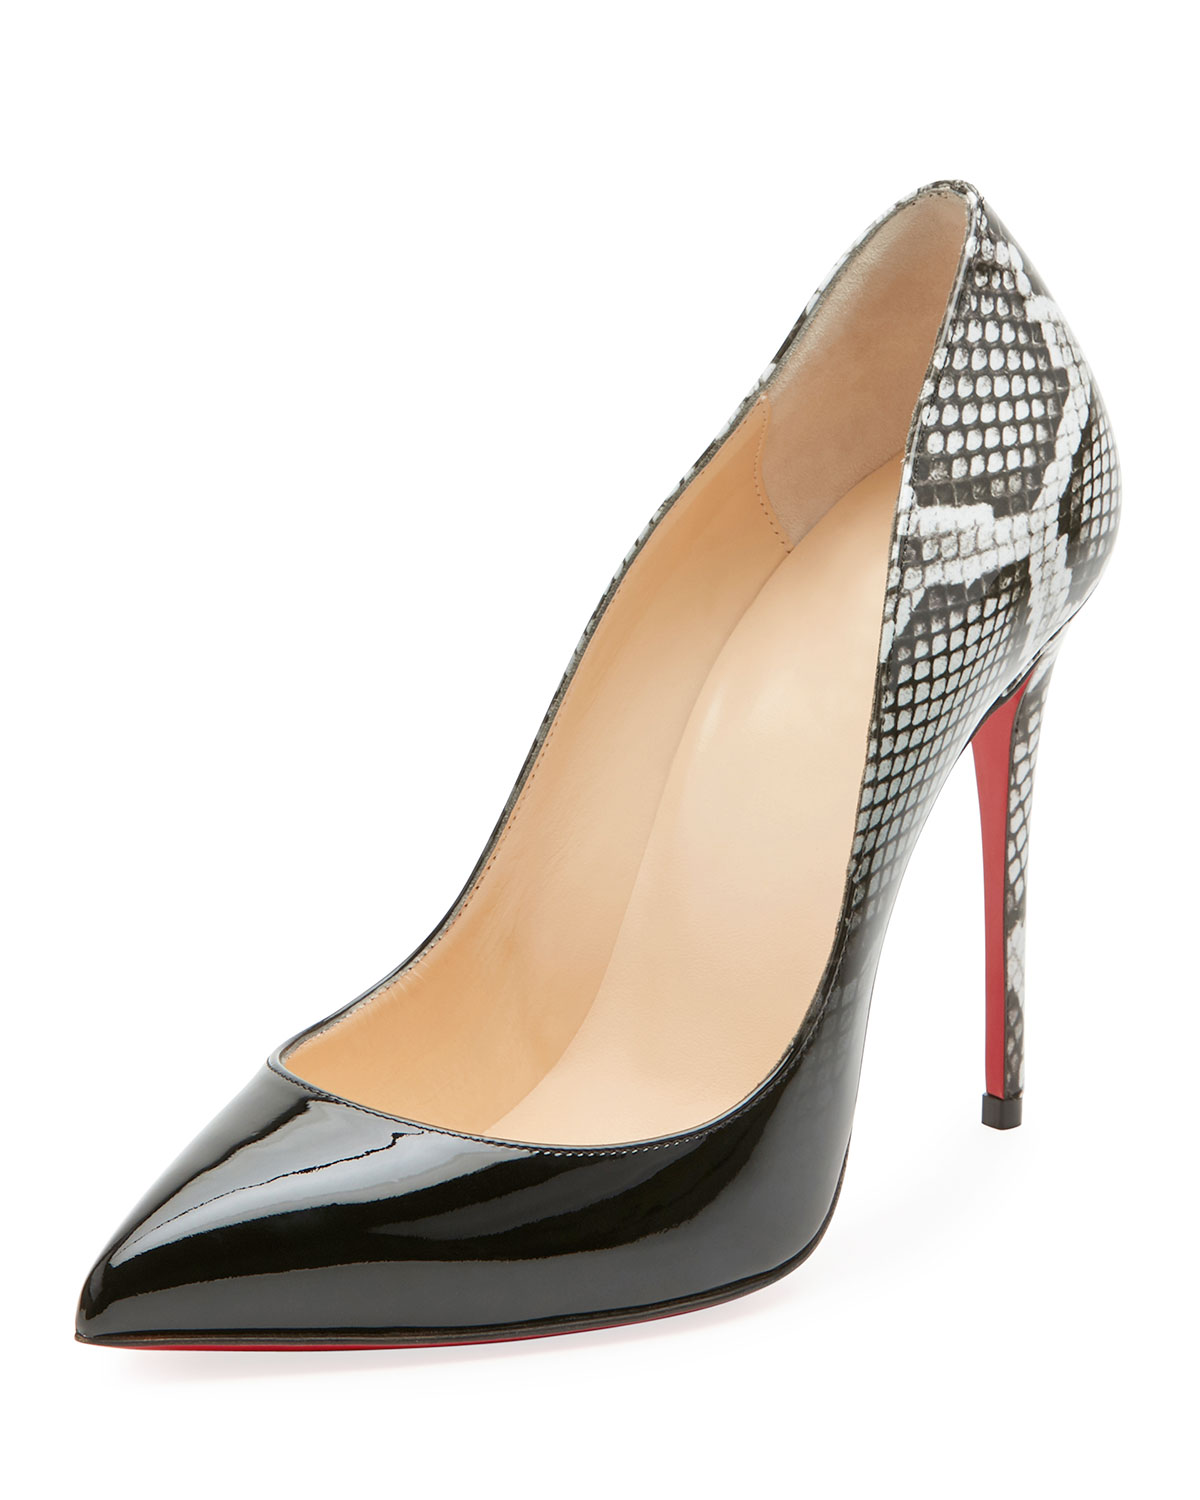 reputable site ea063 c8cfc Pigalle Follies Ombre Snake-Print Red Sole Pump